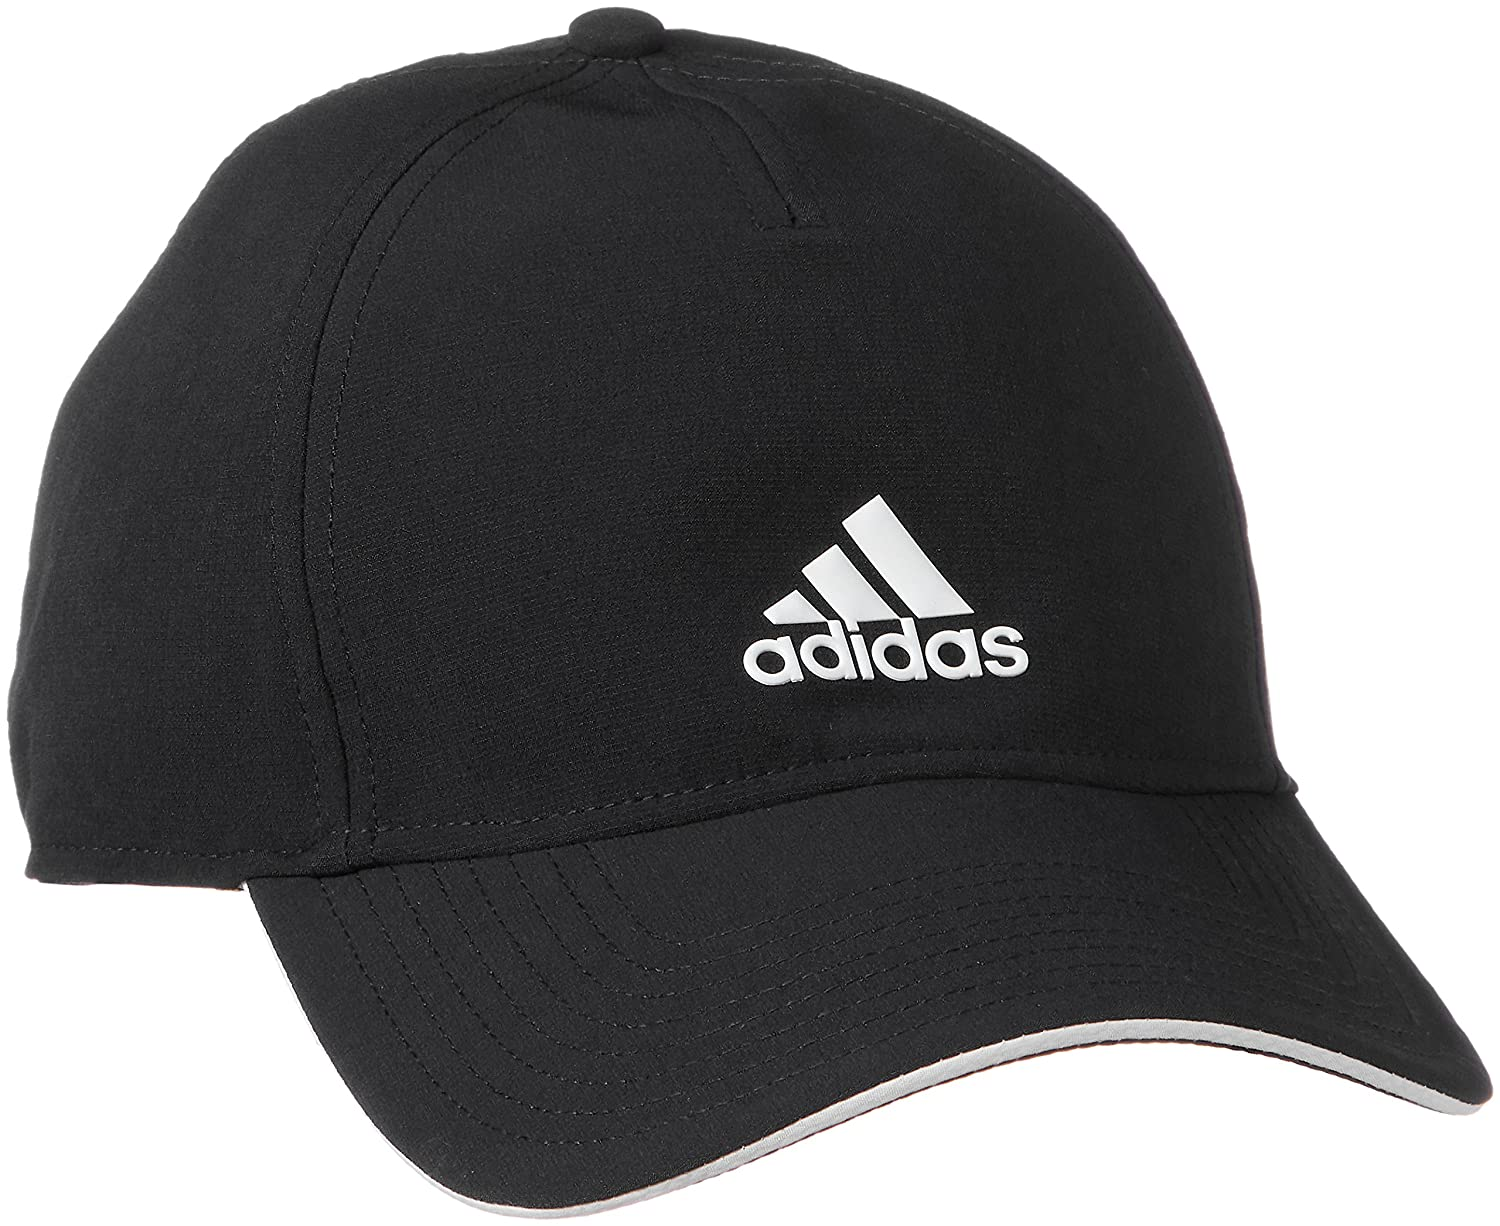 release date 8adbc 119e1 Adidas - C40 5P CLMLT CA - Cap - Mixed Adult  Amazon.co.uk  Sports    Outdoors